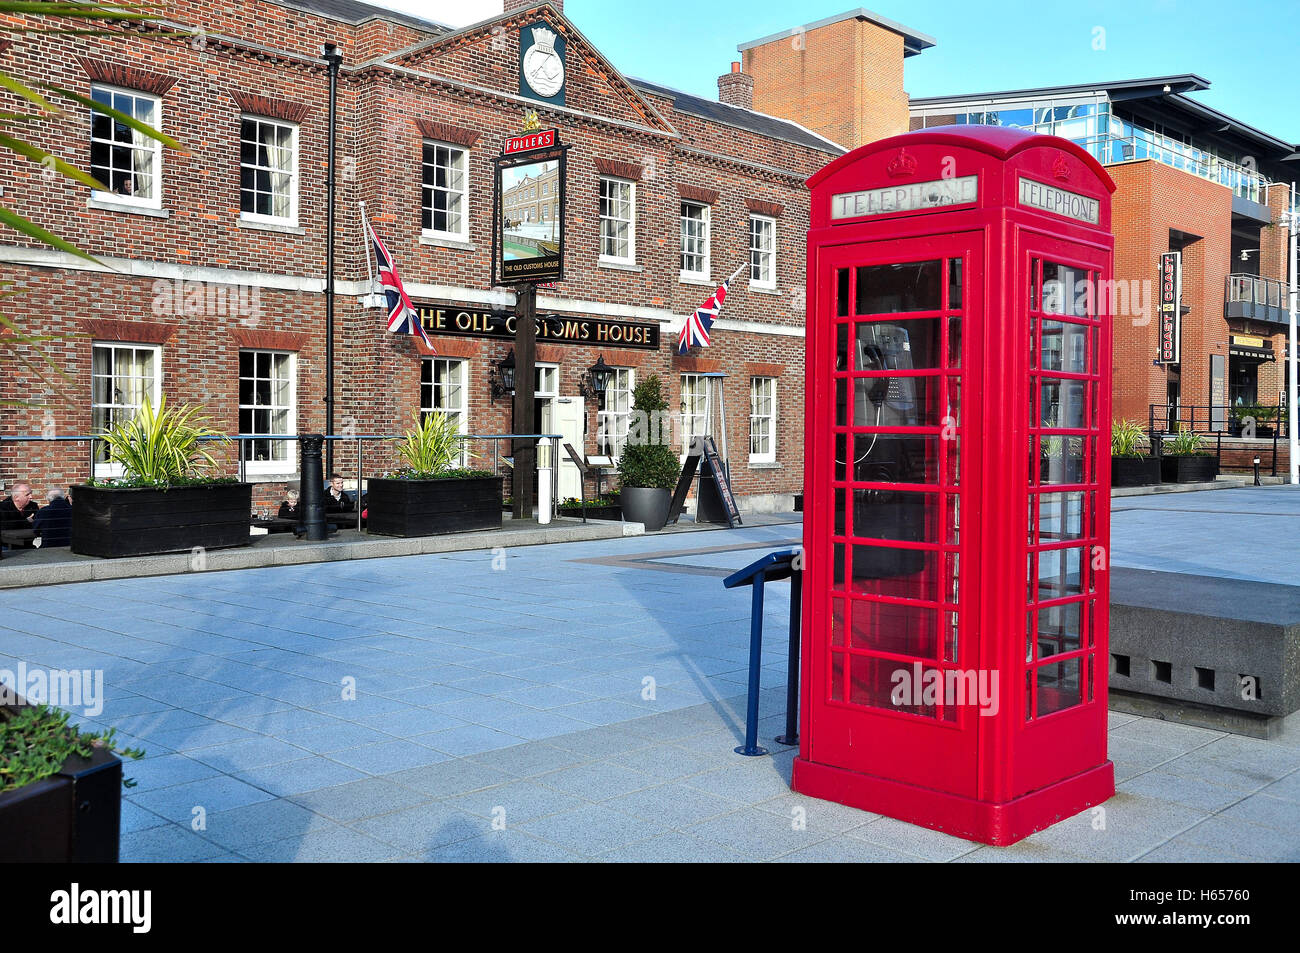 The Old Customs House Pub and telephone box at Gunwharf Quays, Portsmouth Harbour, Portsmouth, Hampshire, England, - Stock Image